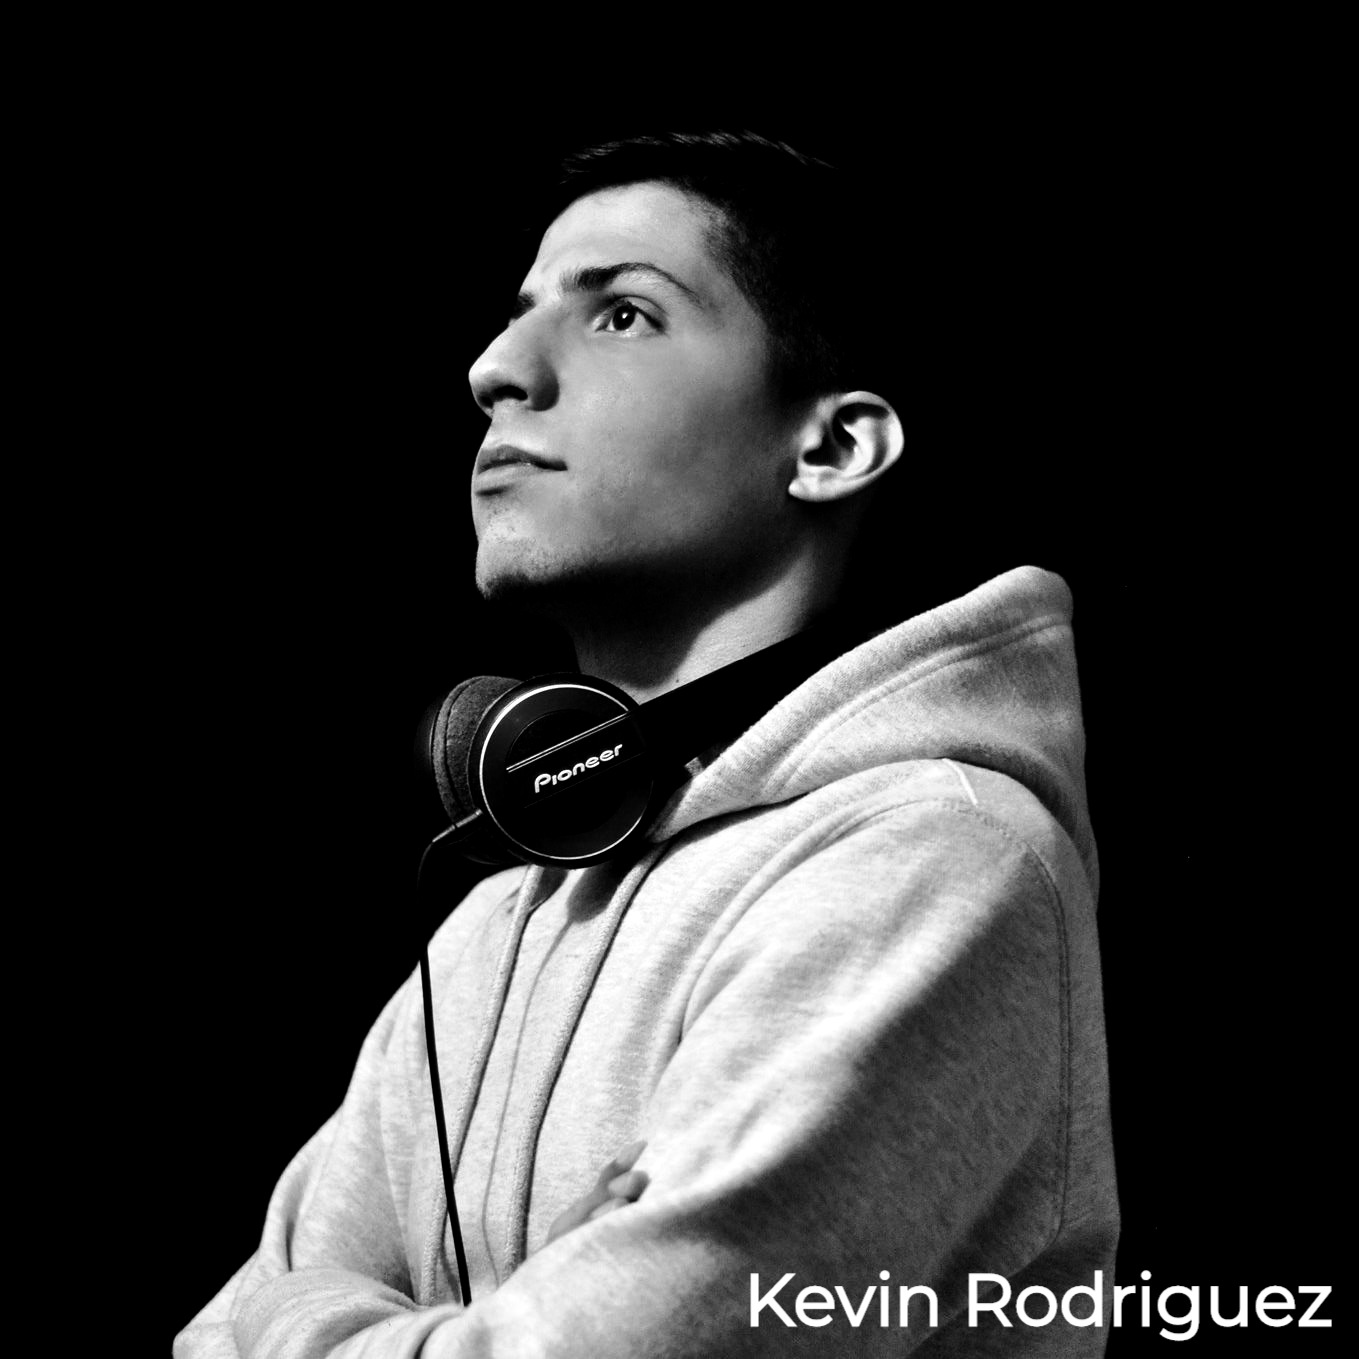 Kevin Rodriguez